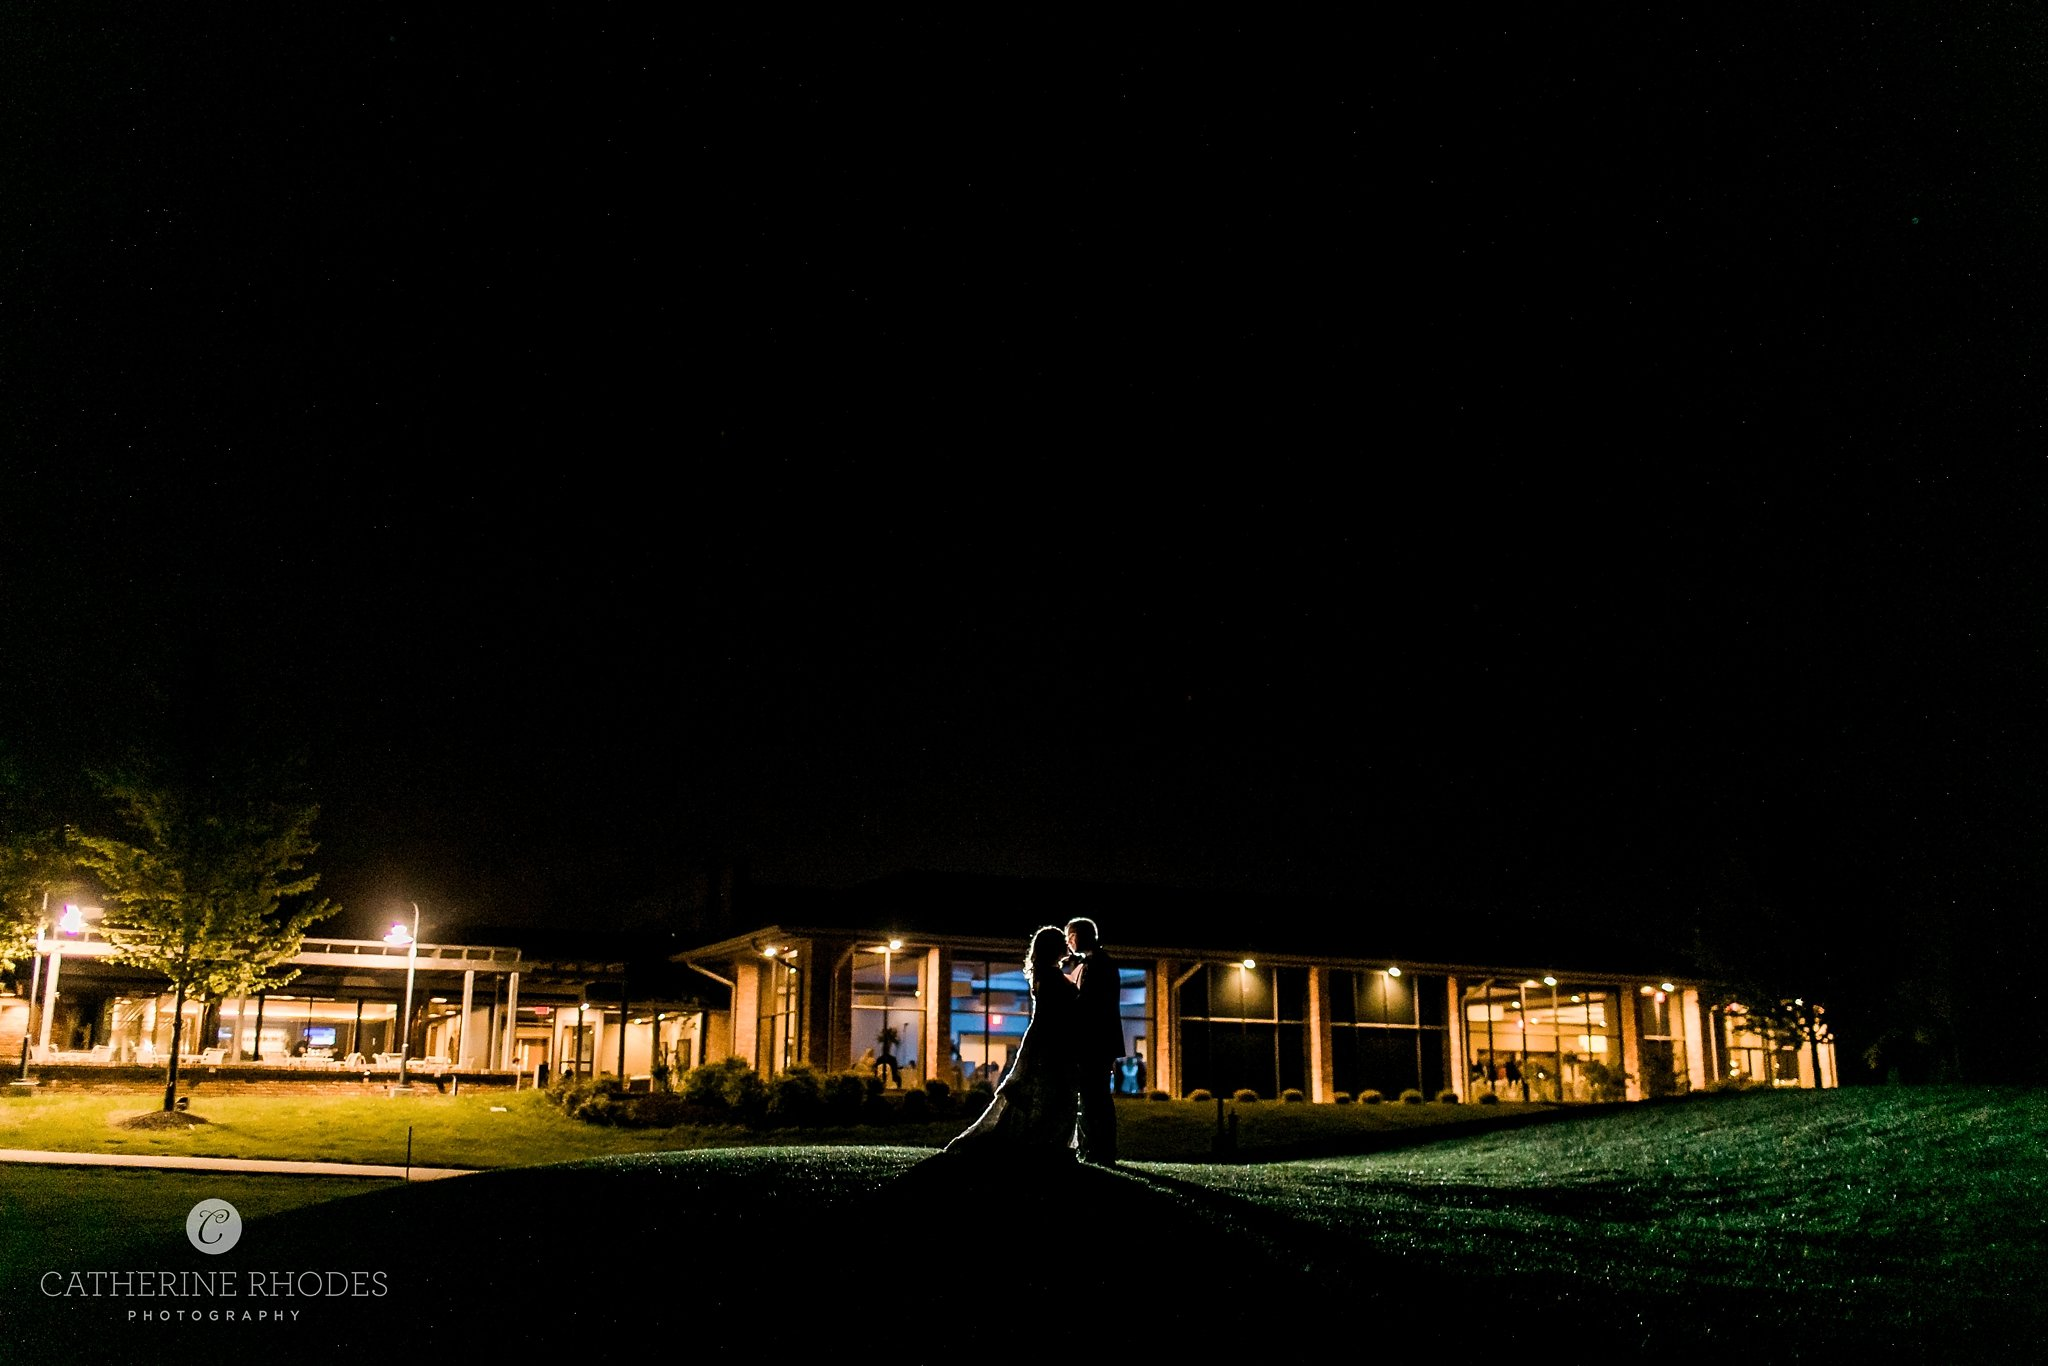 Chaeleigh_Kevin_Reception_MissouriWeddingPhotographer_CatherineRhodesPhotography(256of264)-Edit-1.jpg